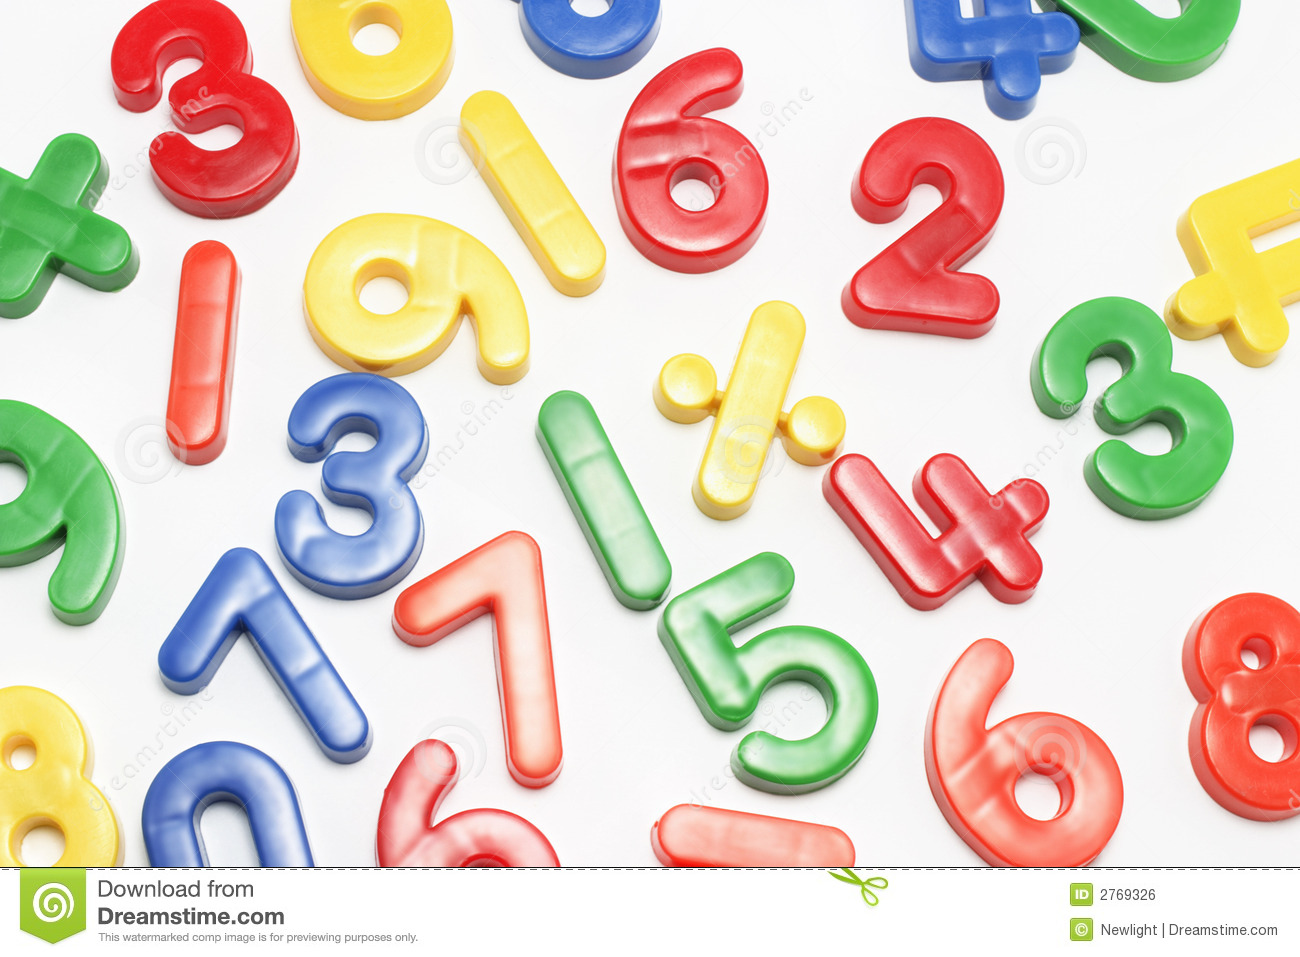 mons category mathematical symbols together with What Is The  mand For A Sum Symbol Superimposed On An Integral Sign together with Clipart Departures Airport Sign besides Node3 together with Royalty Free Stock Image Plastic Numbers Image2769326. on math symbols